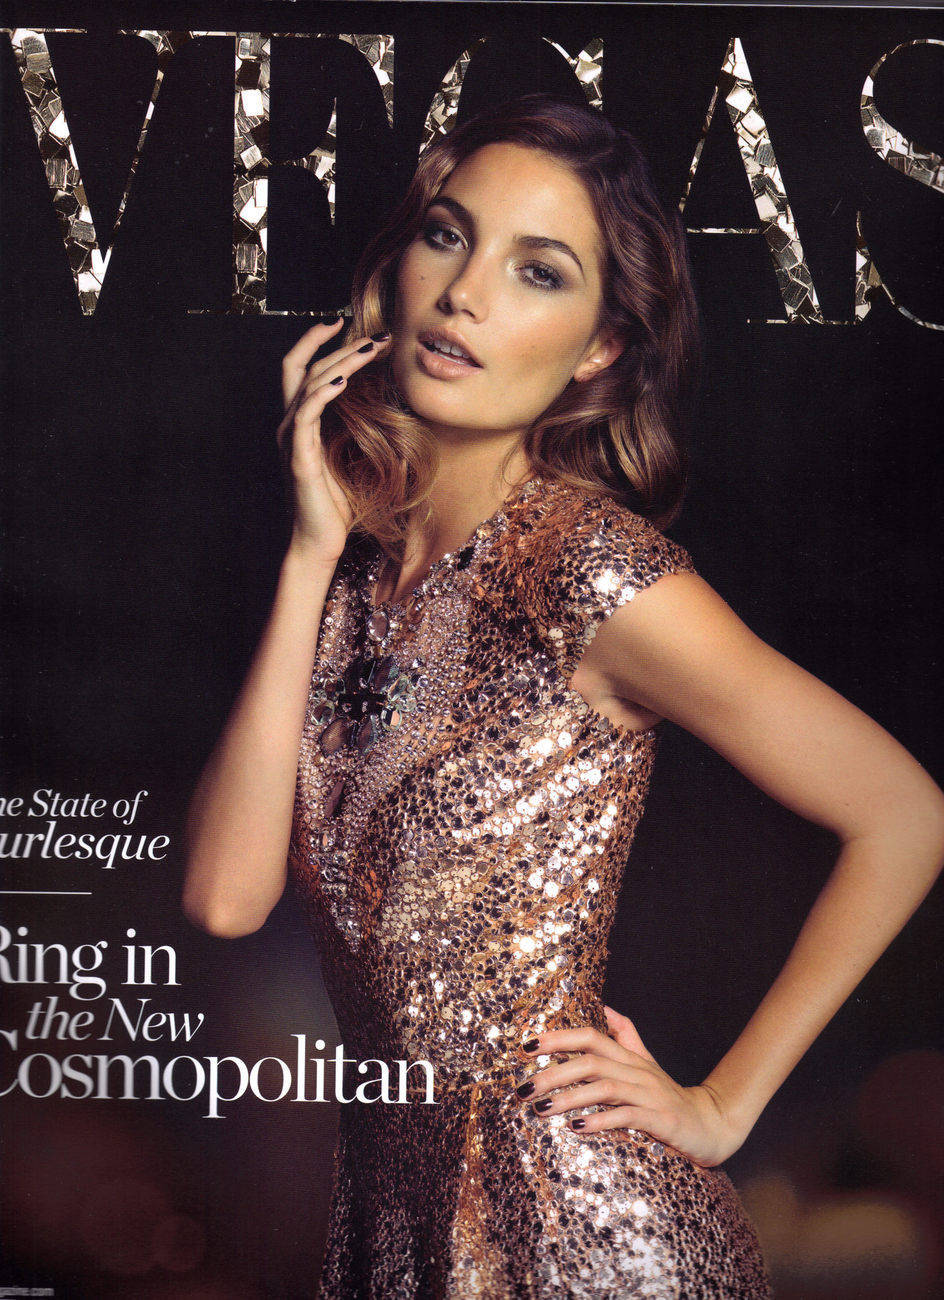 Primary image for LILY ALDRIDGE @ VEGAS Magazine Dec 2010 -Jan 2011 Issue